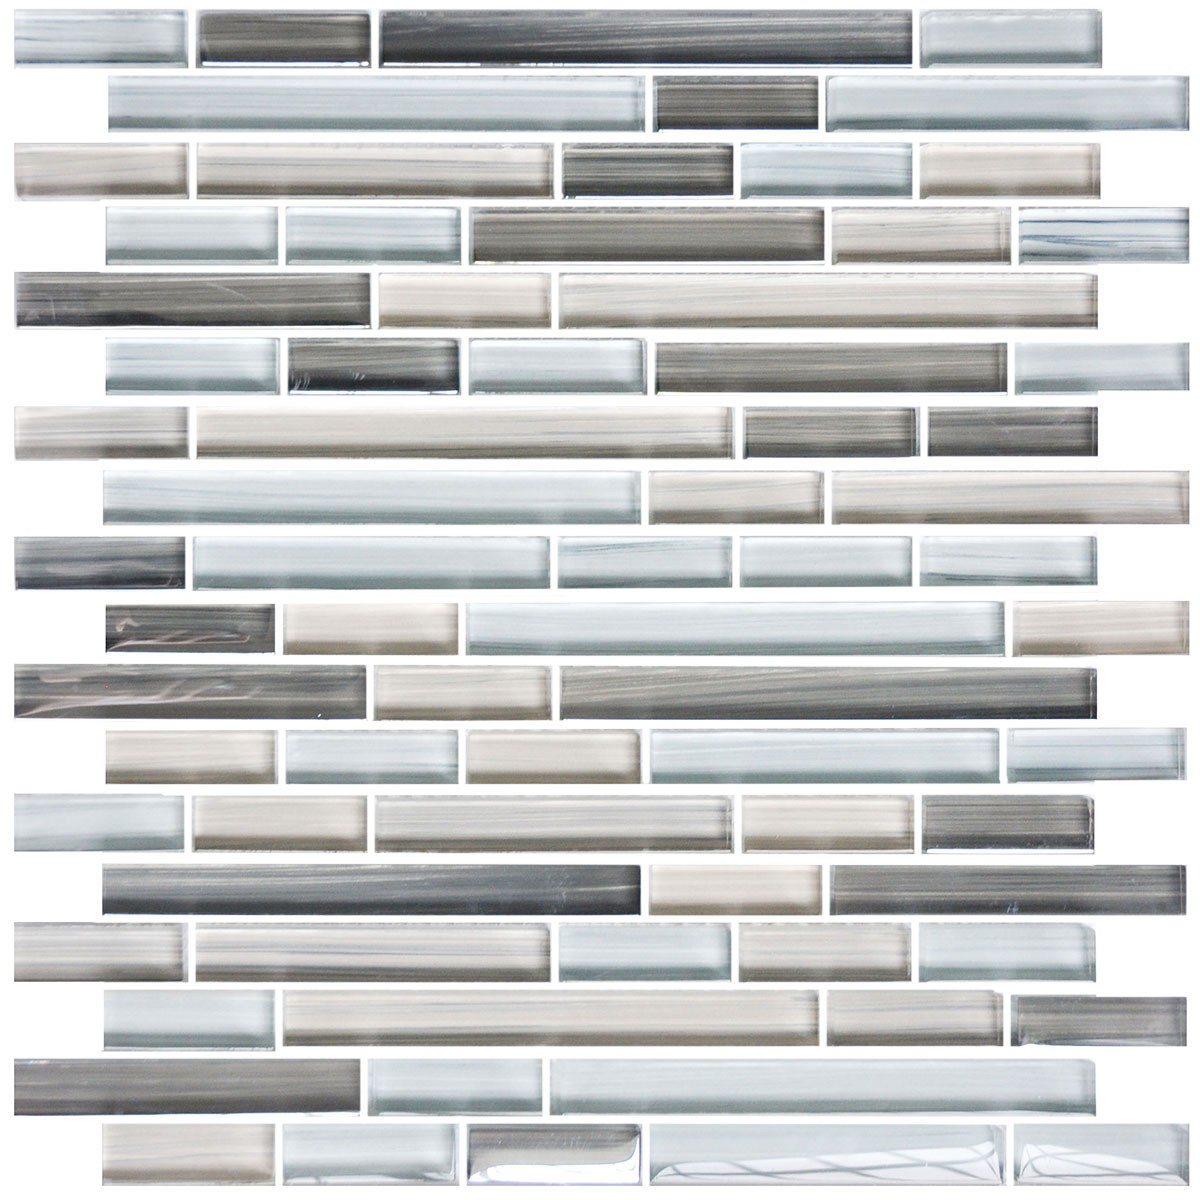 8mm Thickness Electroplated Glass Mosaic Tile - 12 in. x 12 in. (DK-MG4898198ZS3)